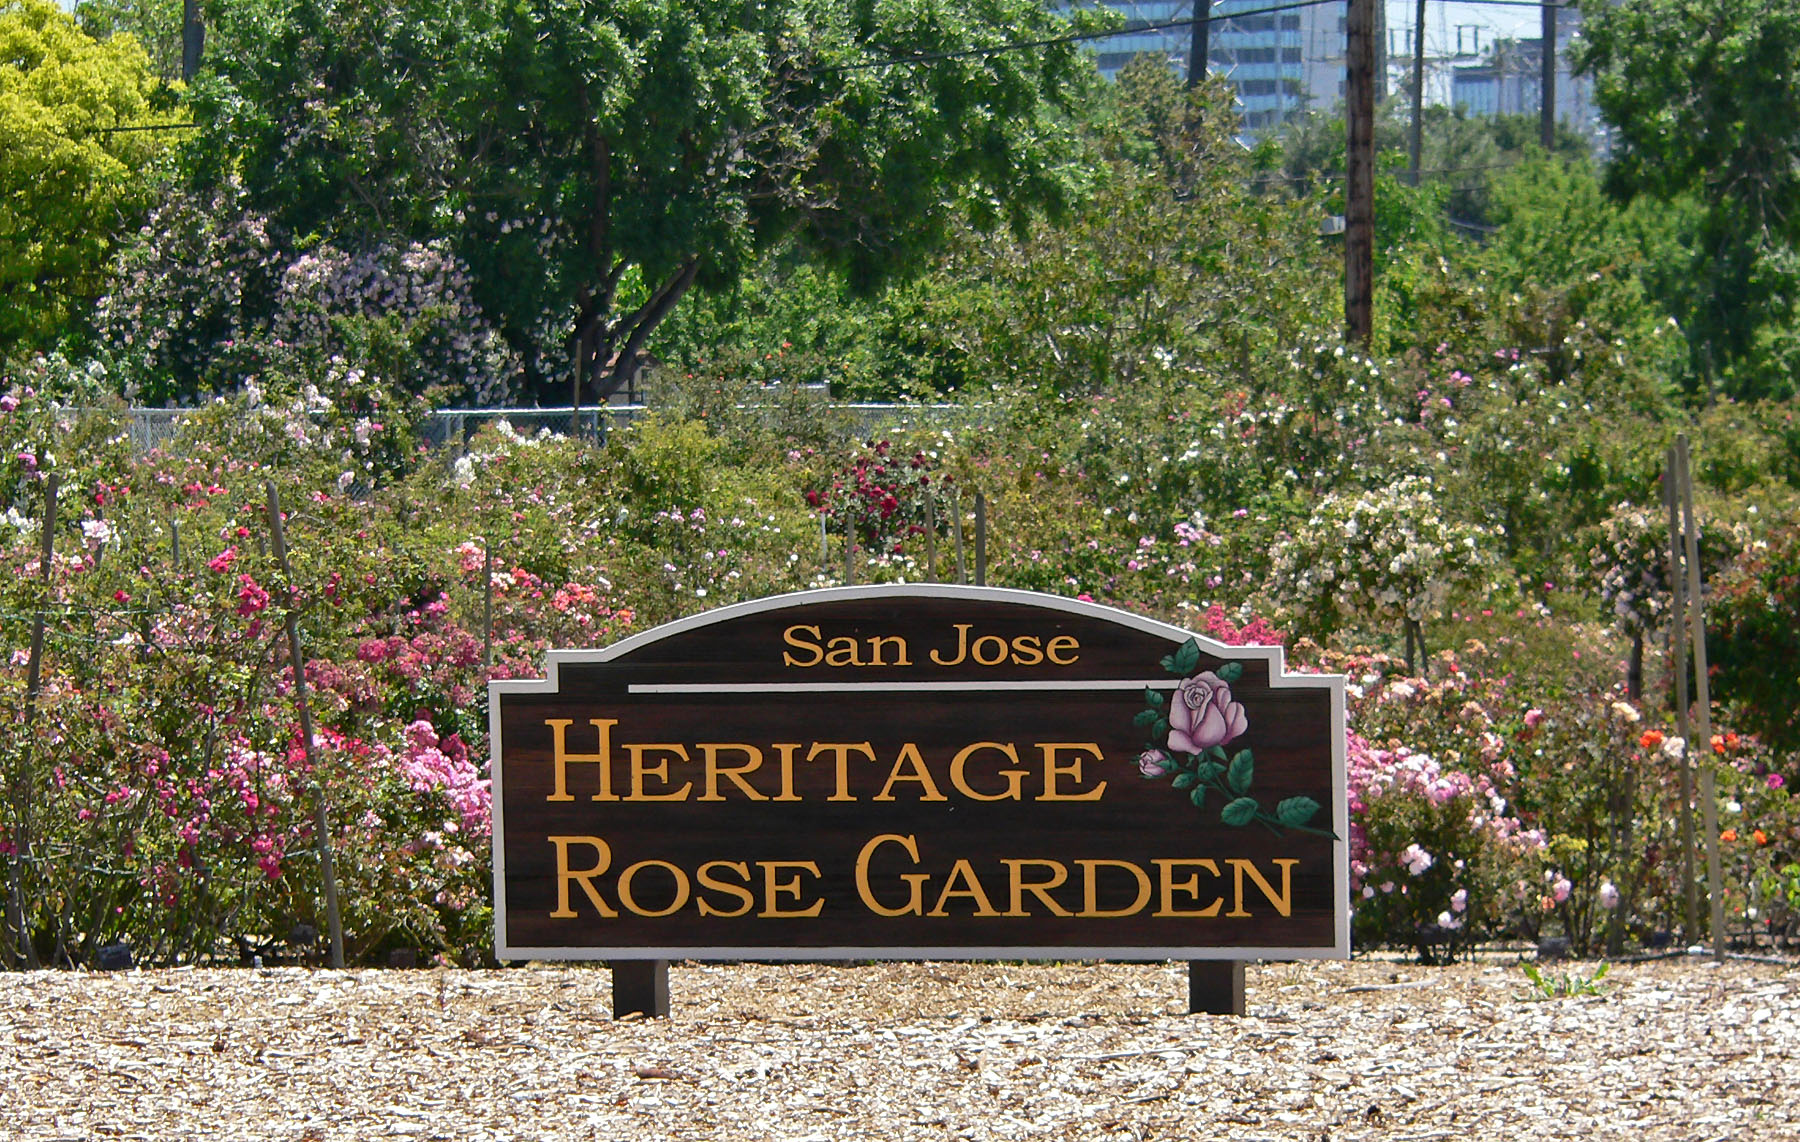 http://upload.wikimedia.org/wikipedia/commons/e/ea/San_Jose_Heritage_Rose_Garden_view_1.jpg